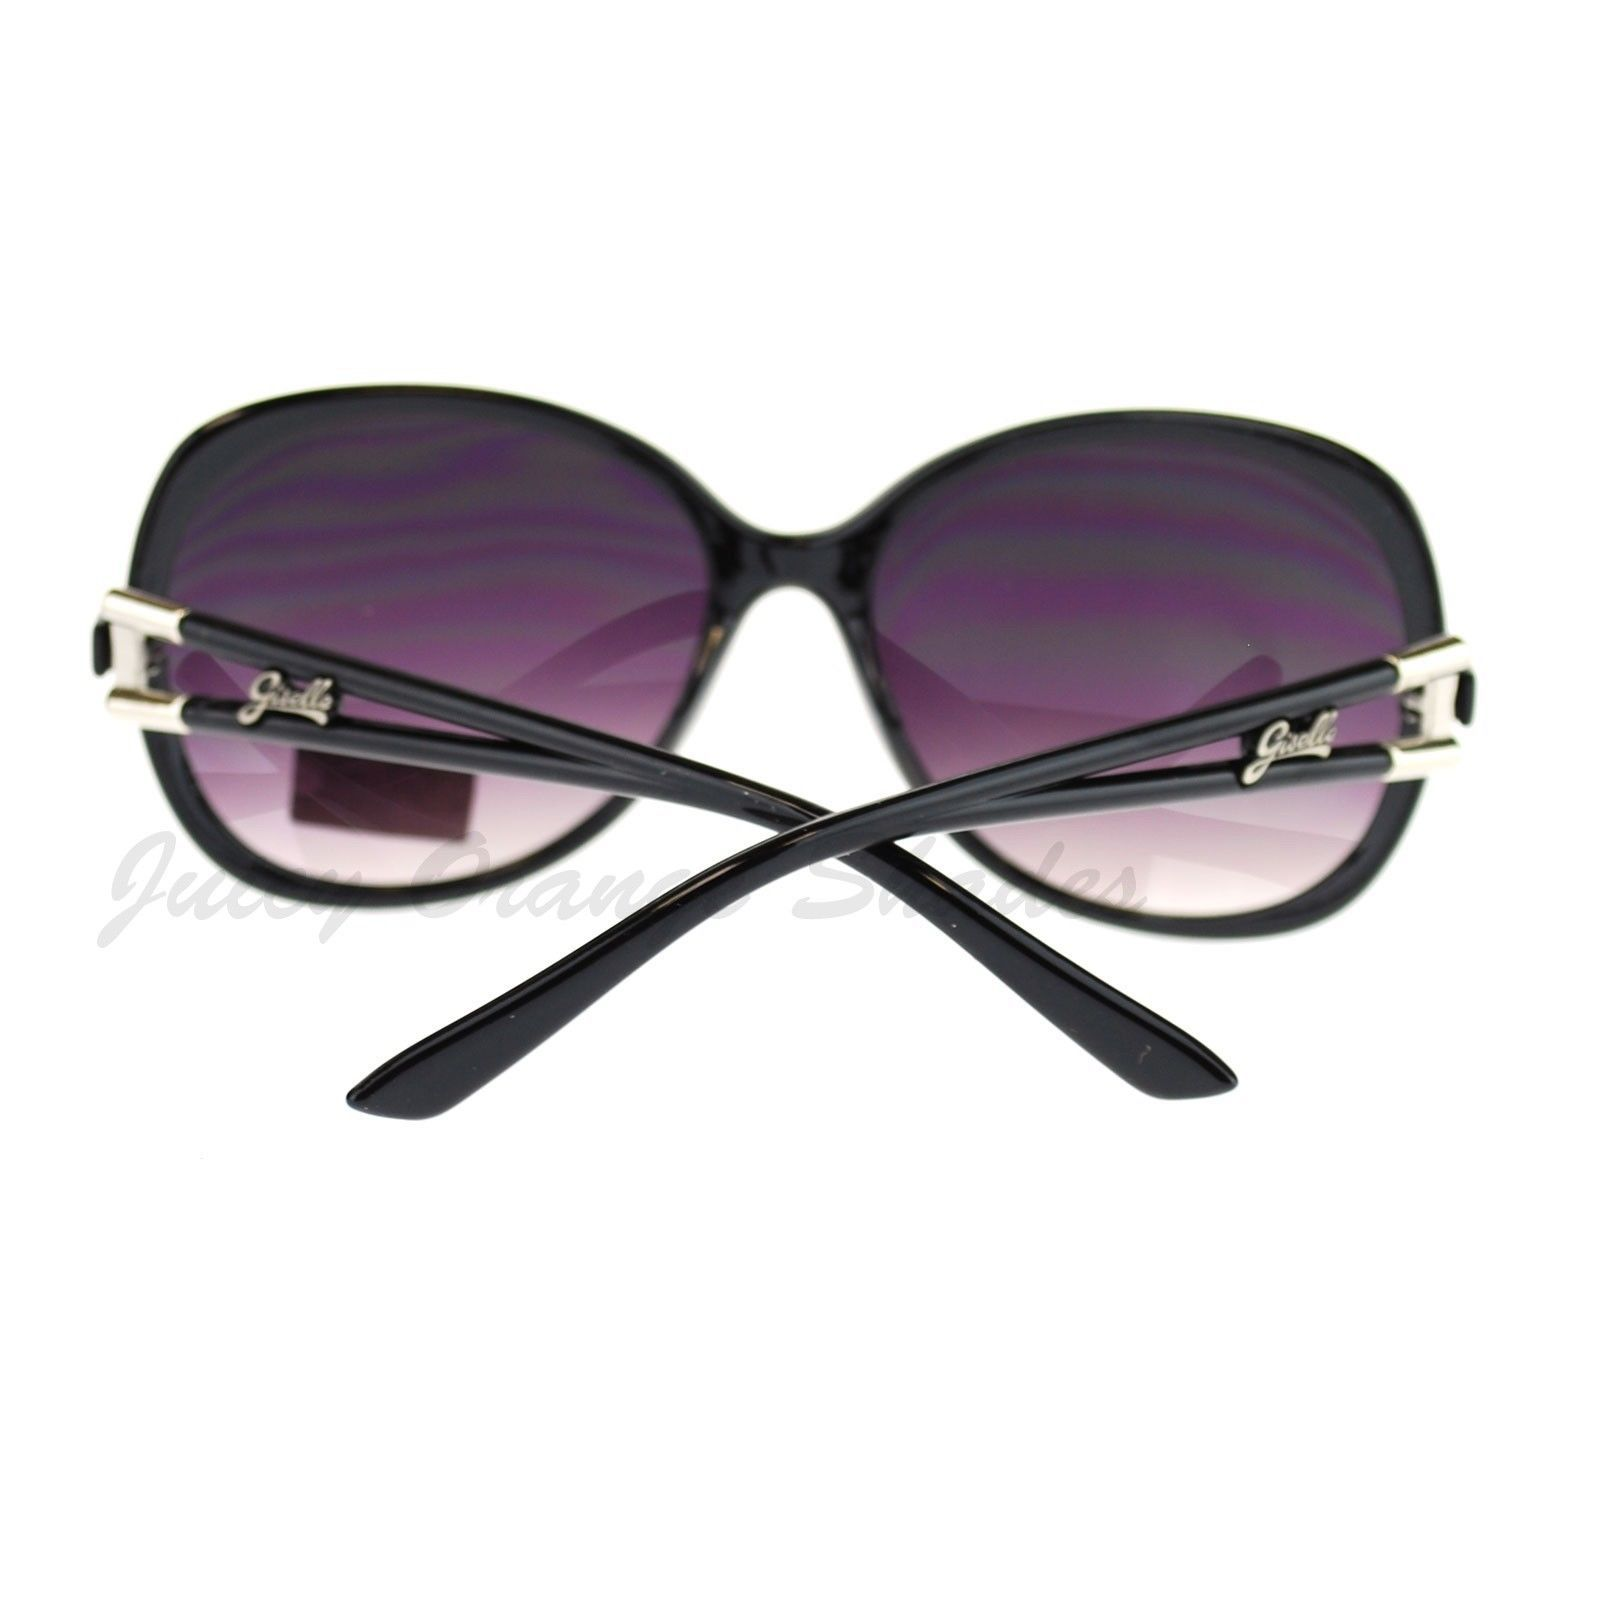 Womens Sunglasses Classic Oversize Round Butterfly Frame